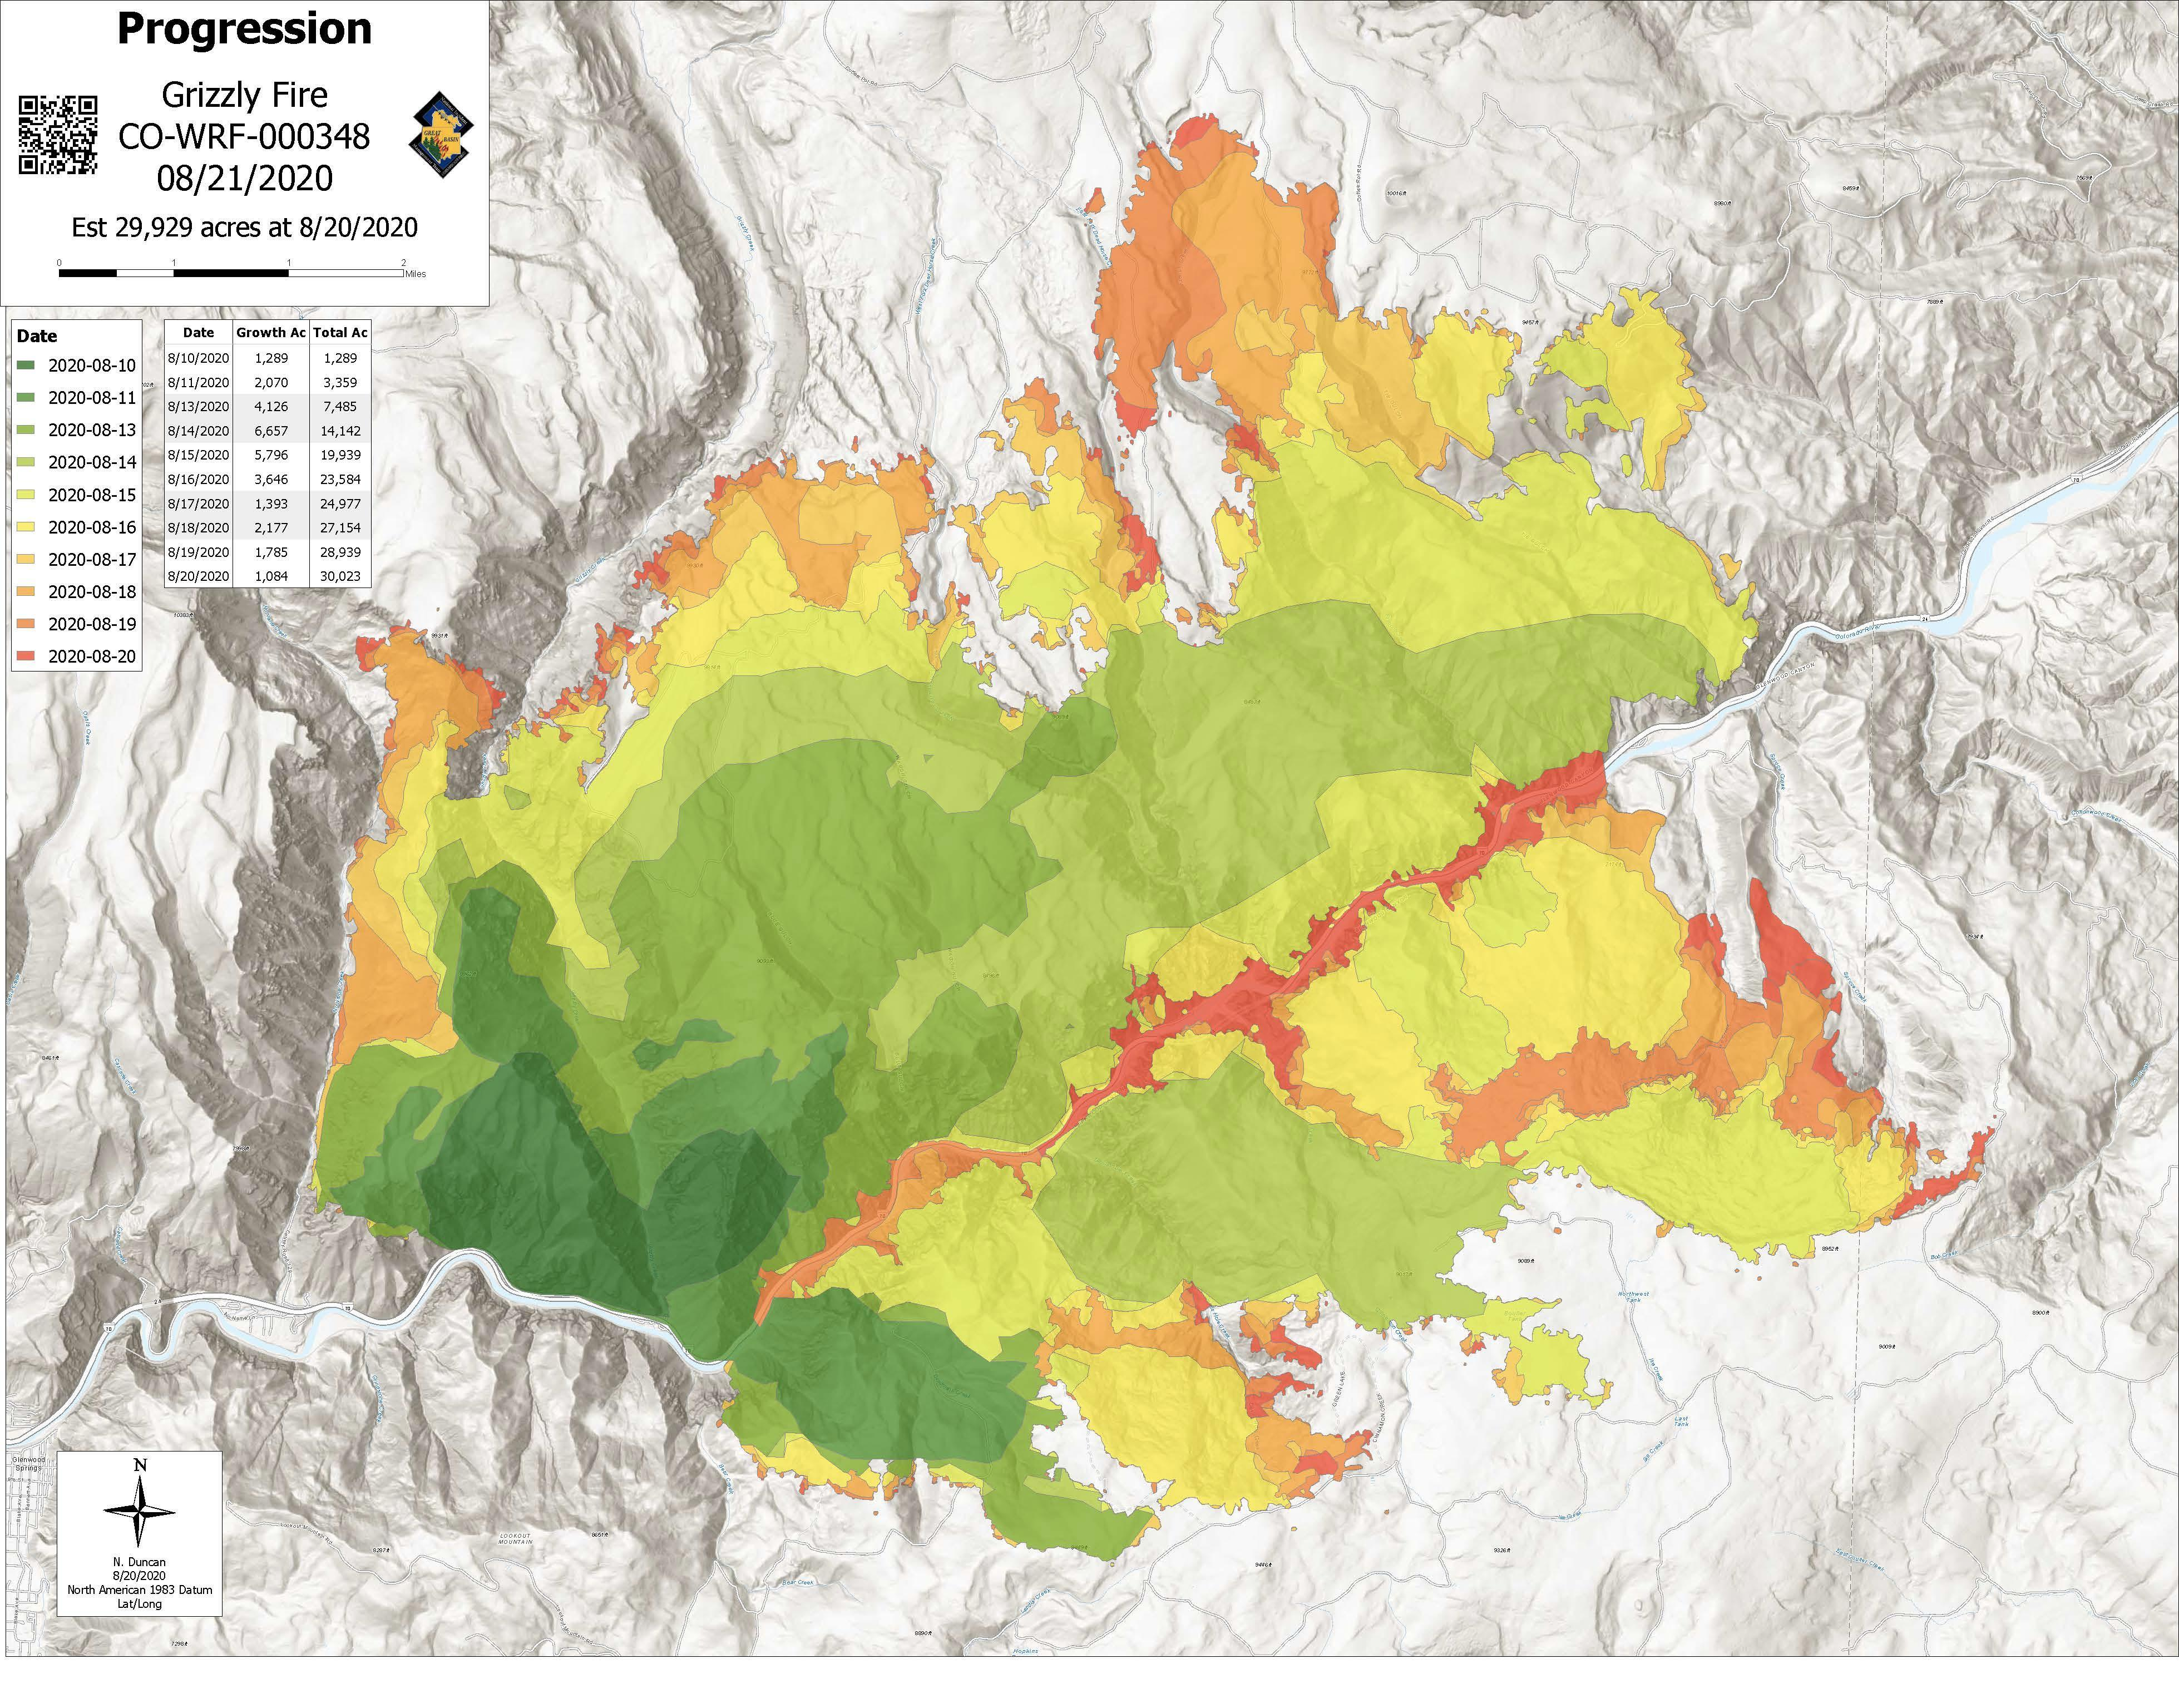 Sanborn map company, oct 1889; Grizzly Creek Fire Progression Map 8 21 20 Jpeg Grizzly Creek Fire Wildfire And Smoke Map Thespectrum Com